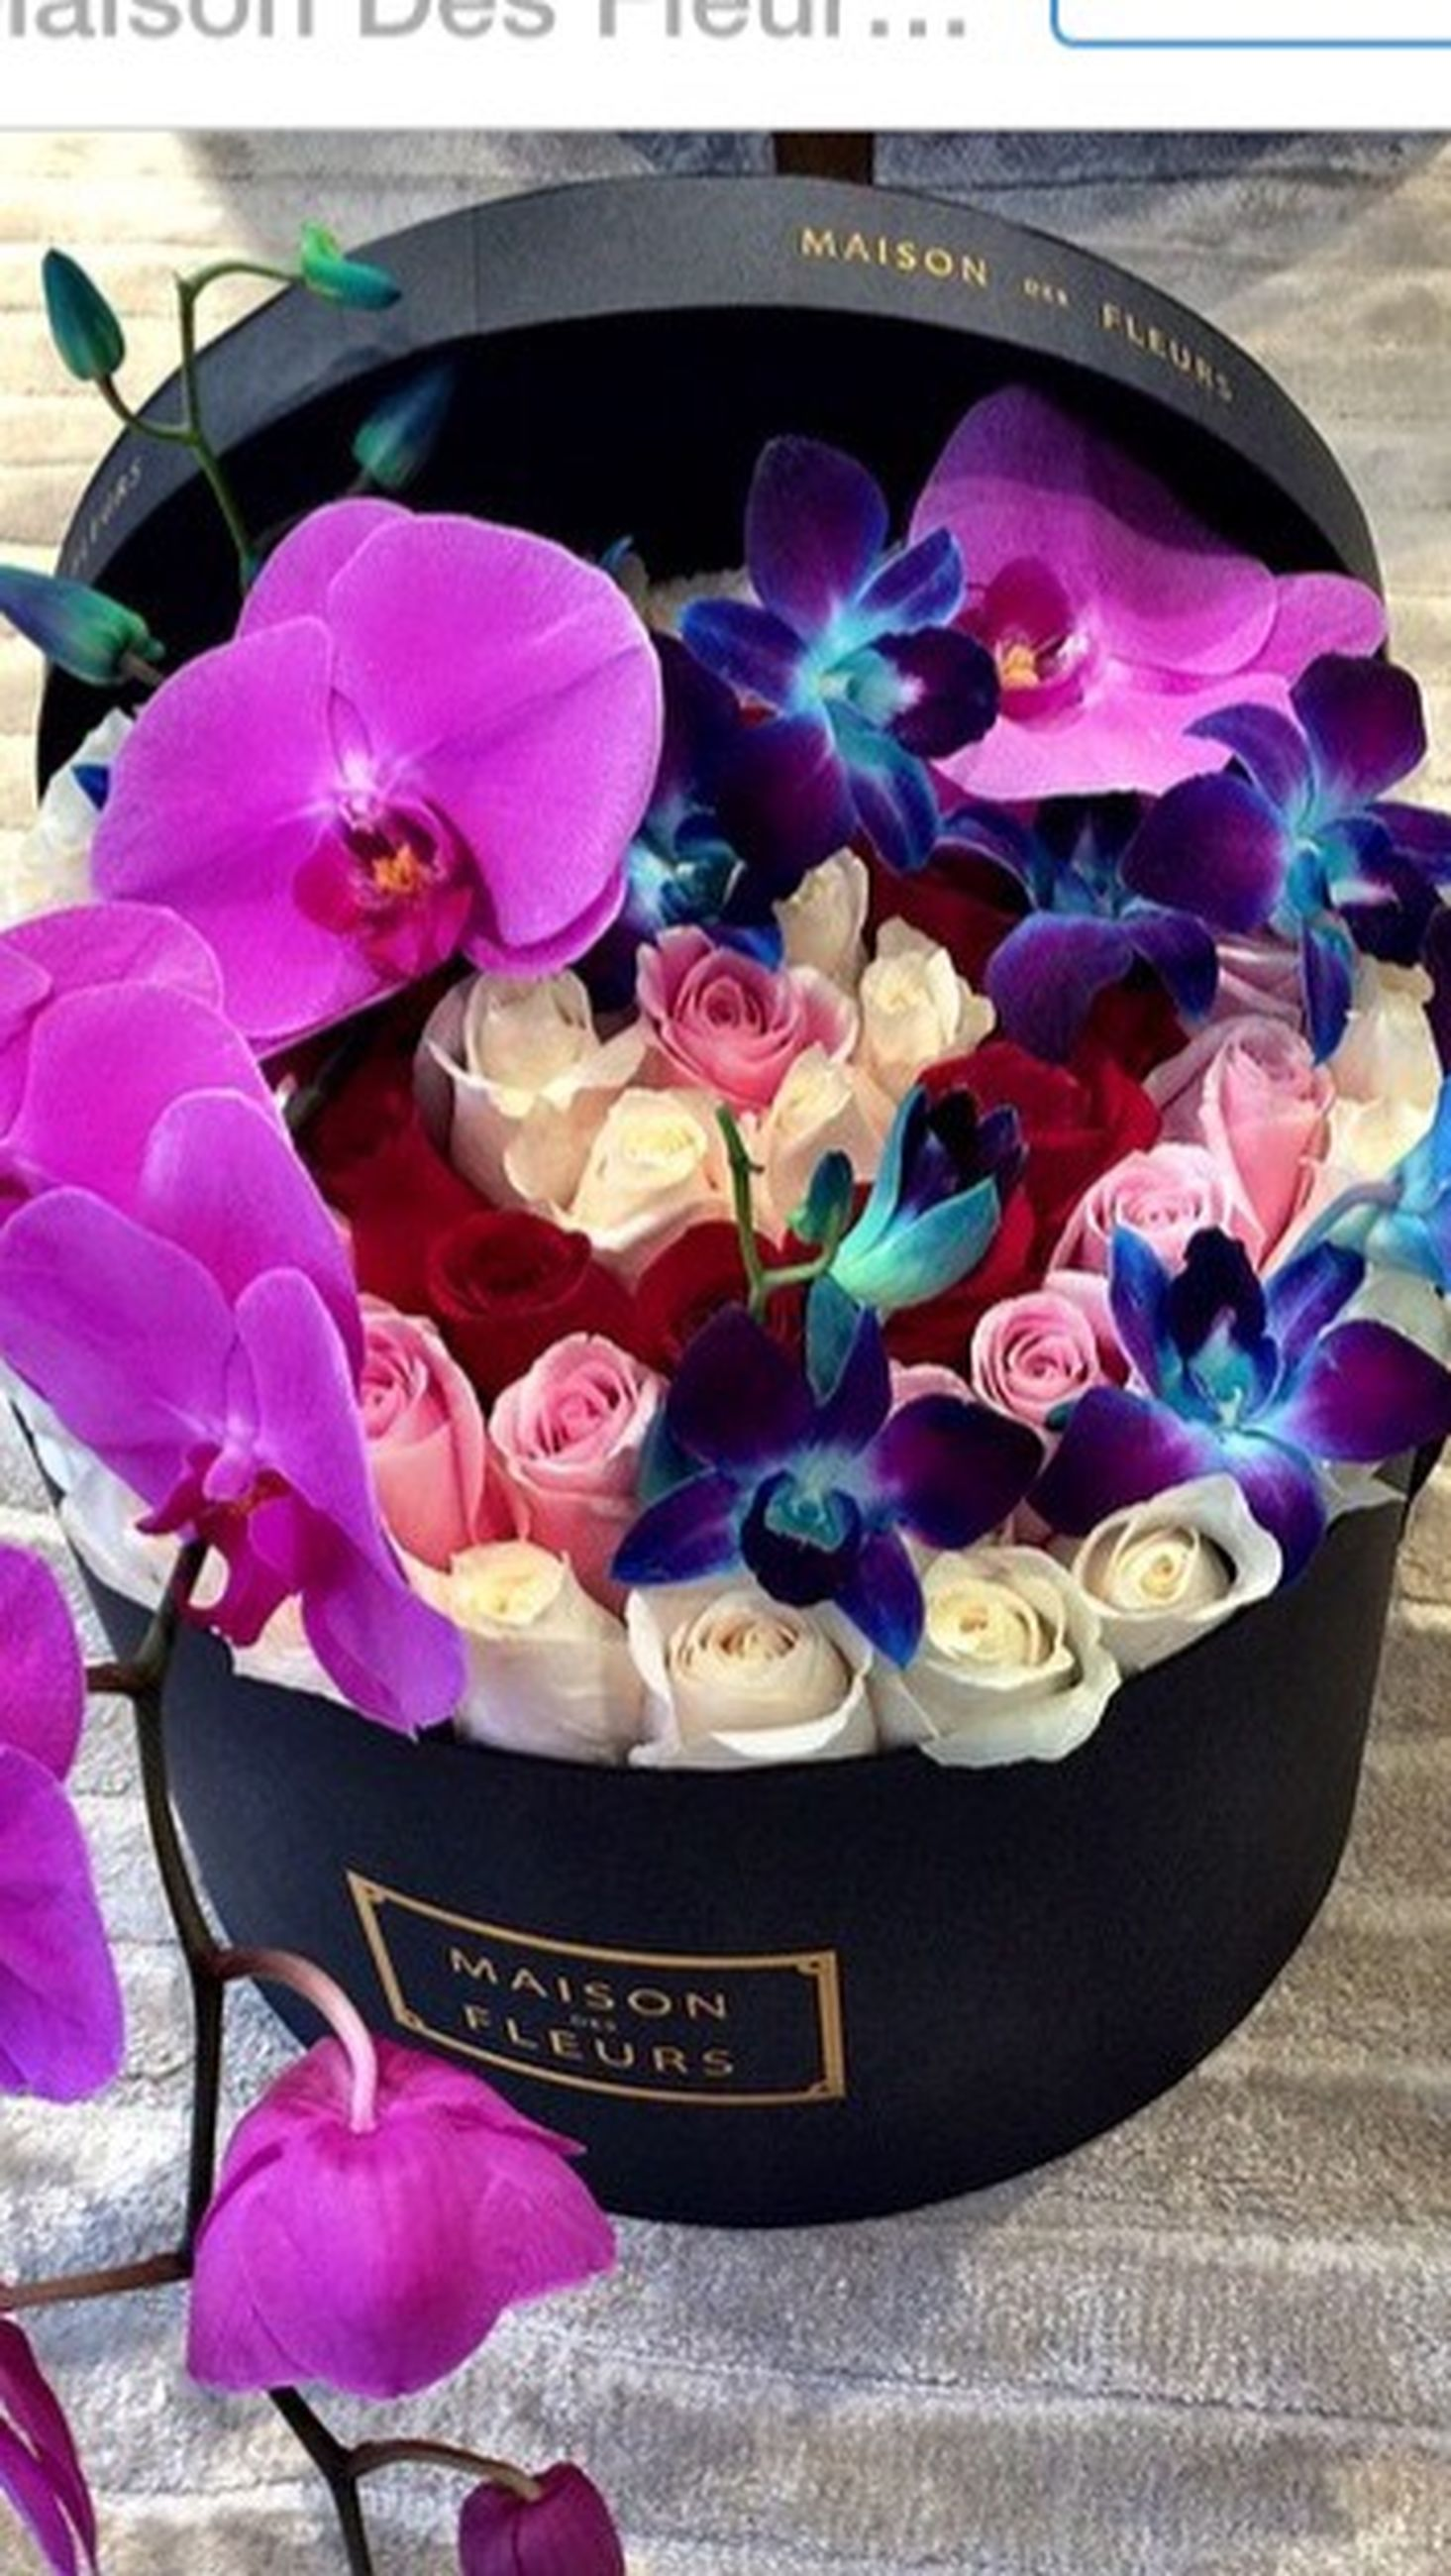 flower, freshness, purple, pink color, petal, fragility, close-up, flower head, beauty in nature, focus on foreground, high angle view, table, nature, day, no people, indoors, blooming, orchid, plant